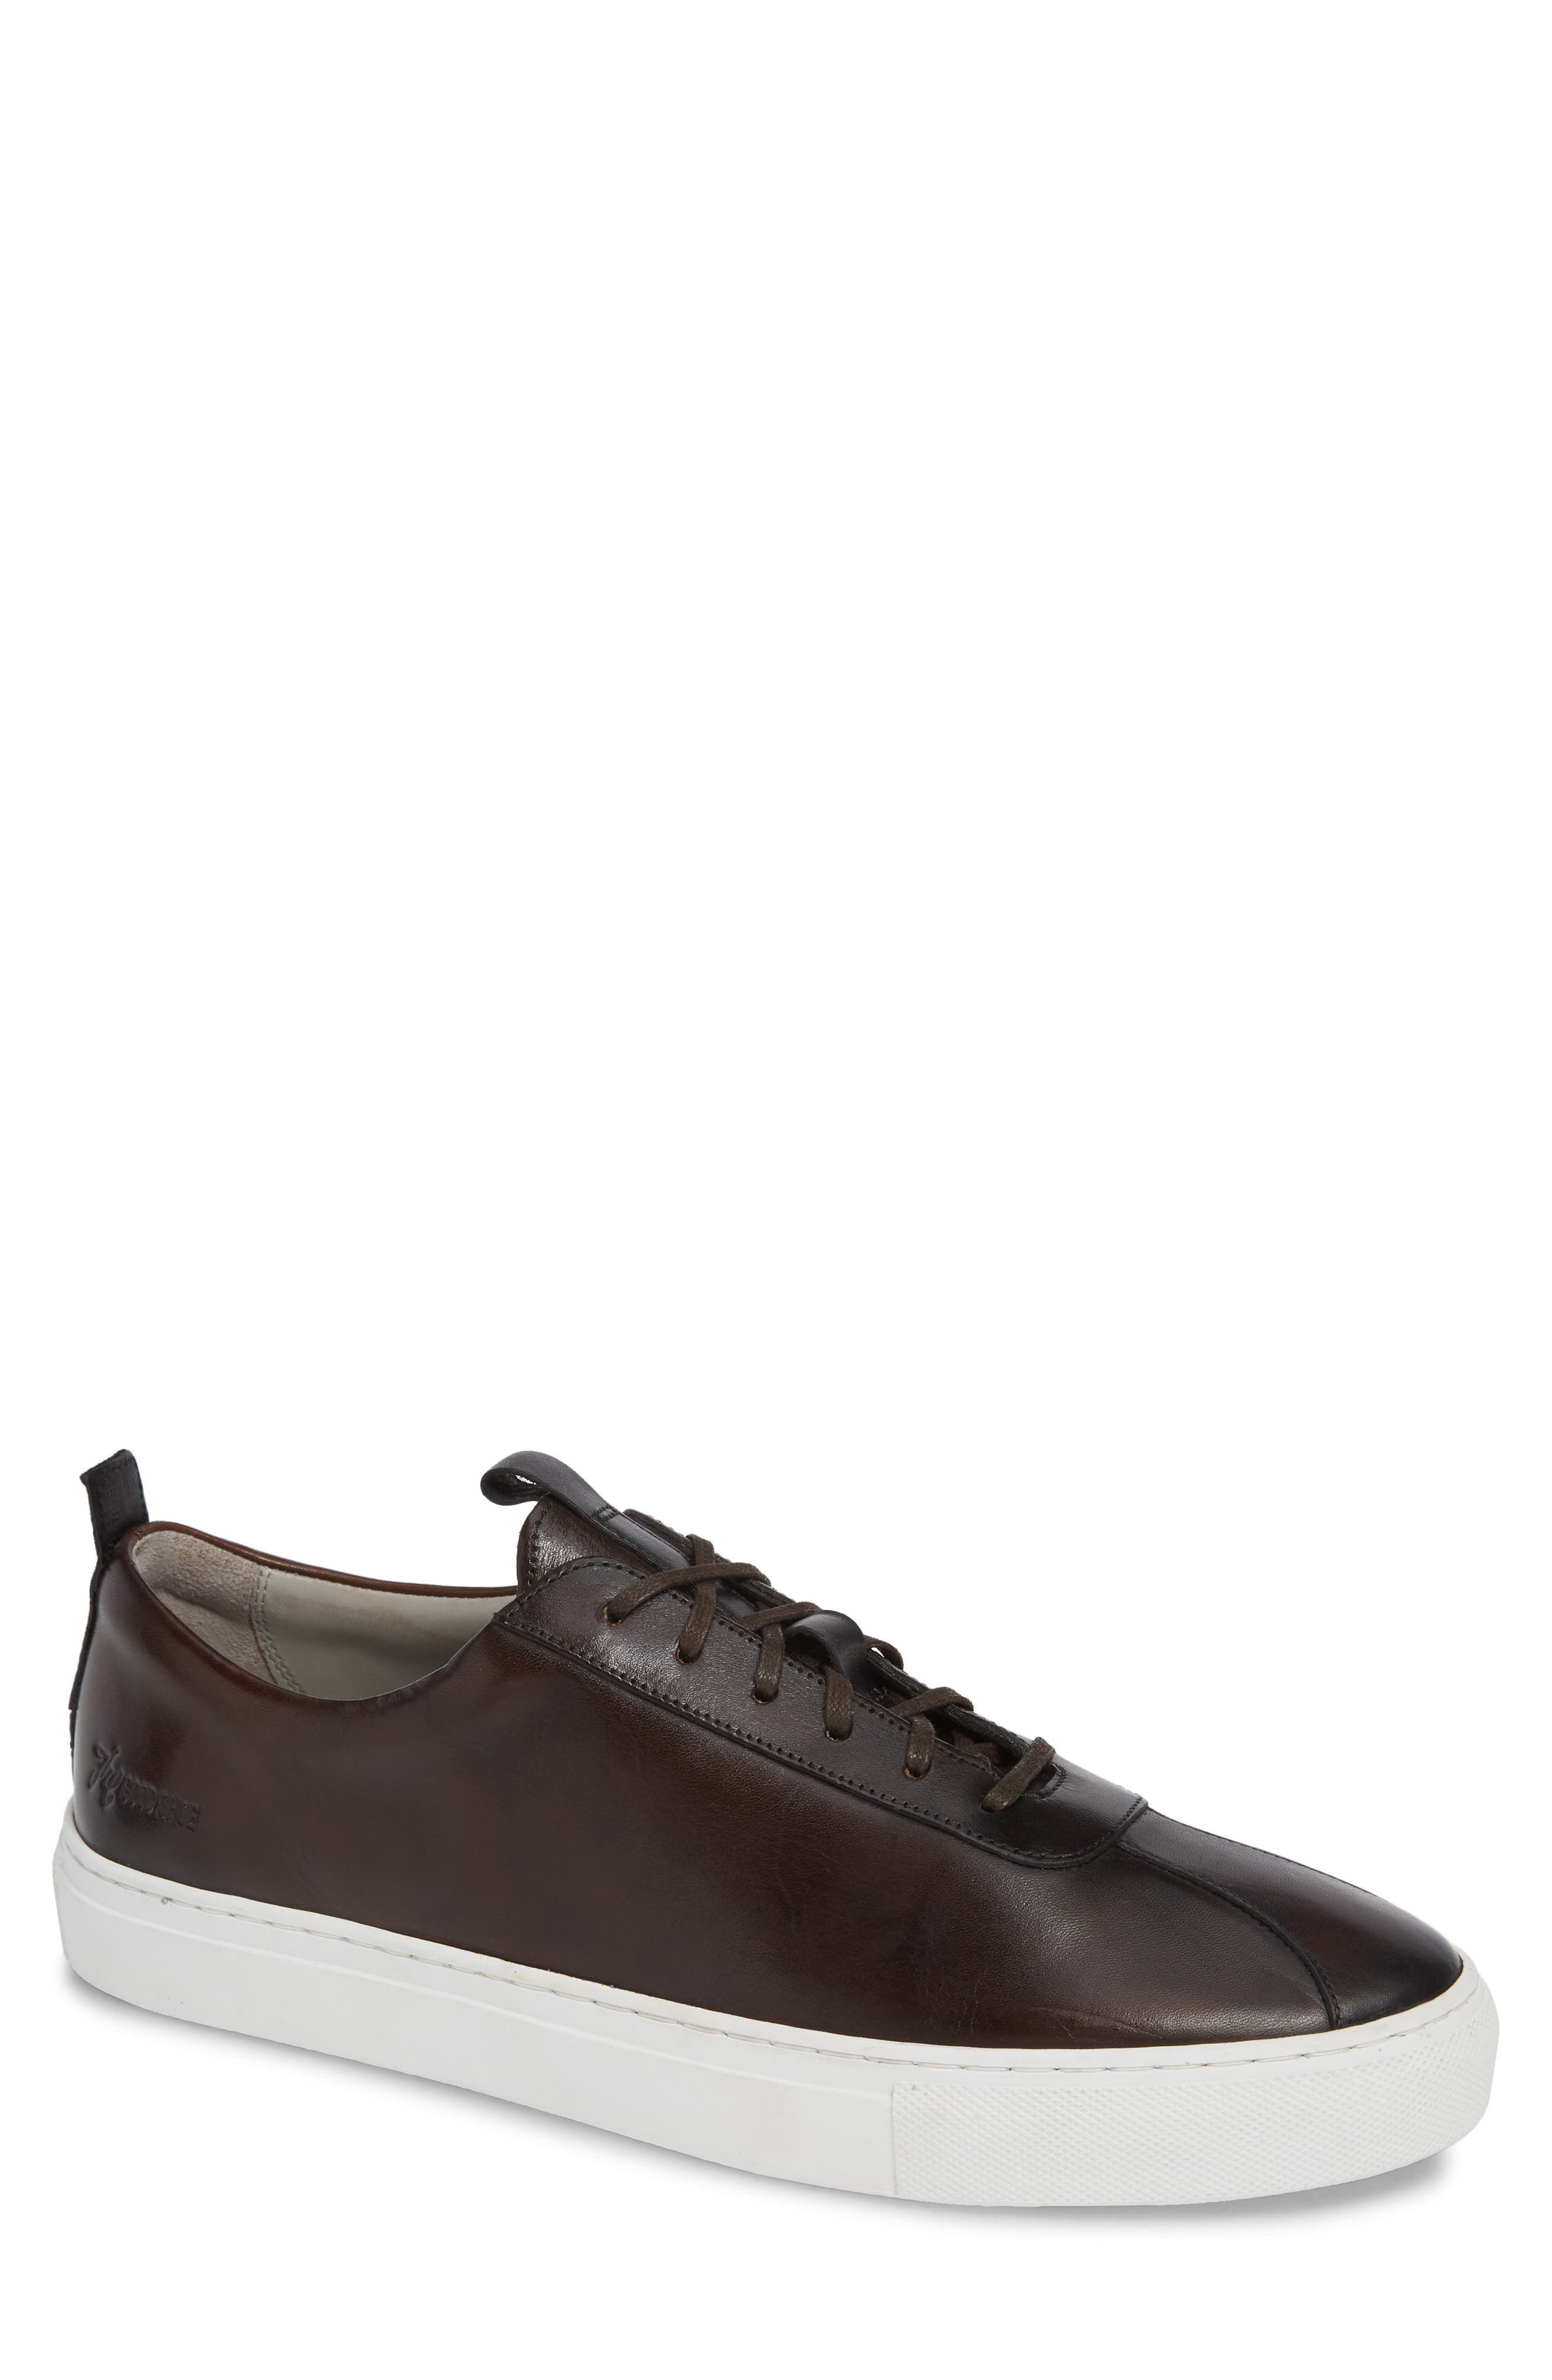 GRENSON,                             Low Top Sneaker,                             Main thumbnail 1, color,                             BROWN HAND PAINTED